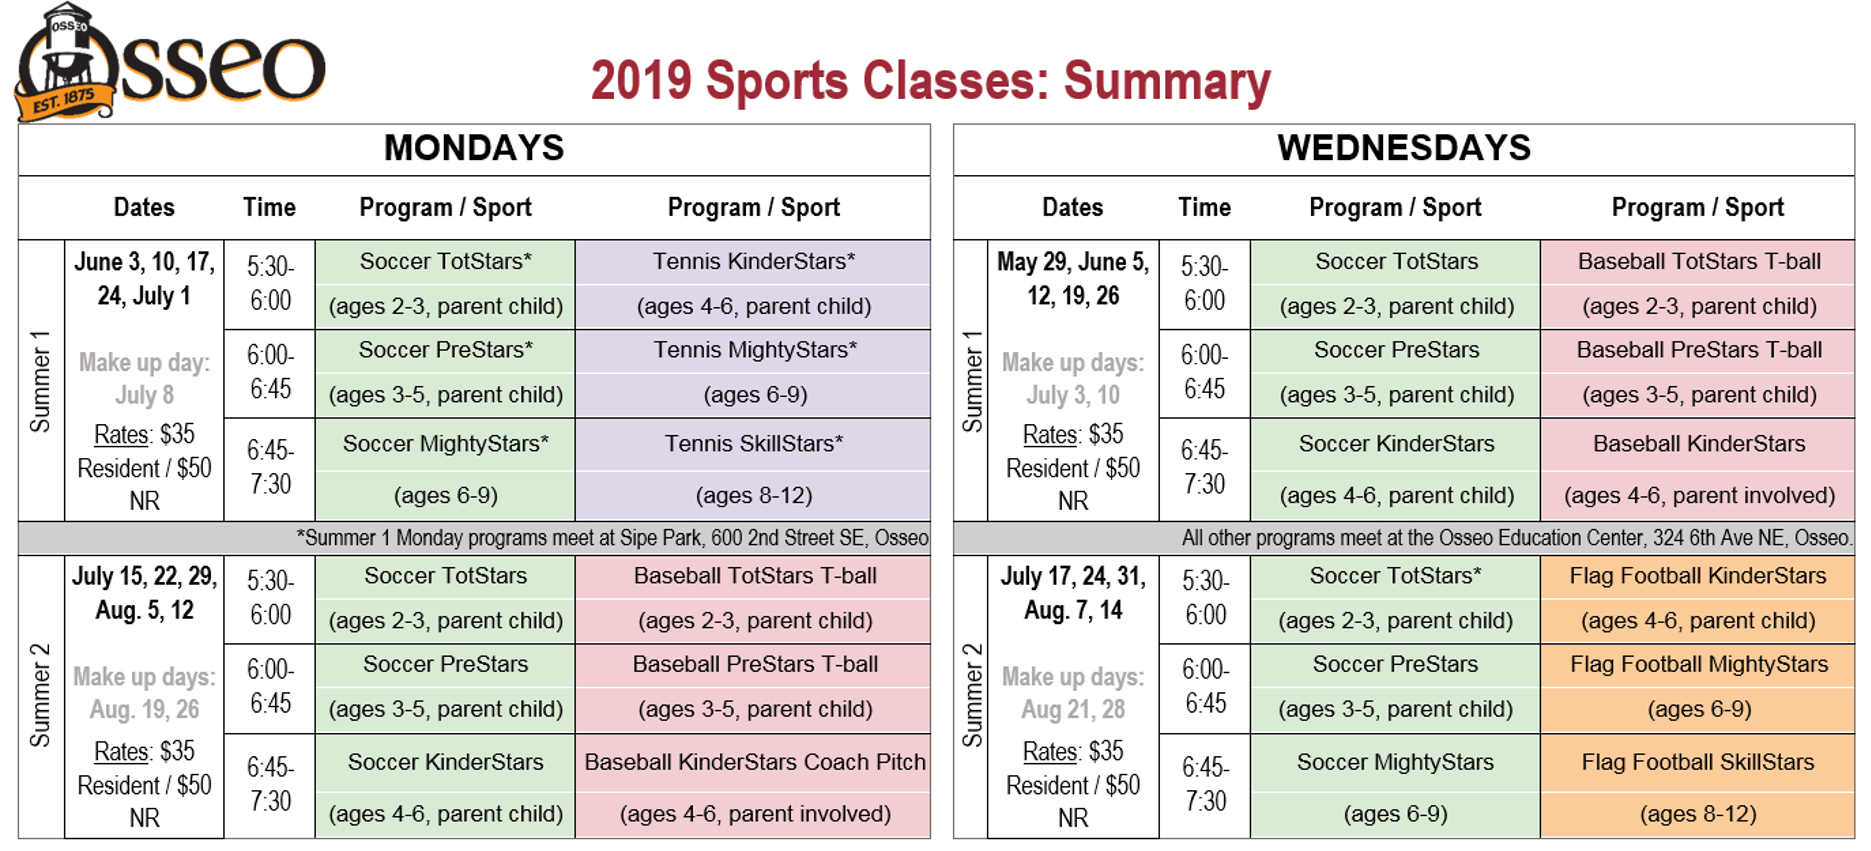 2019 Class Schedule Sumary